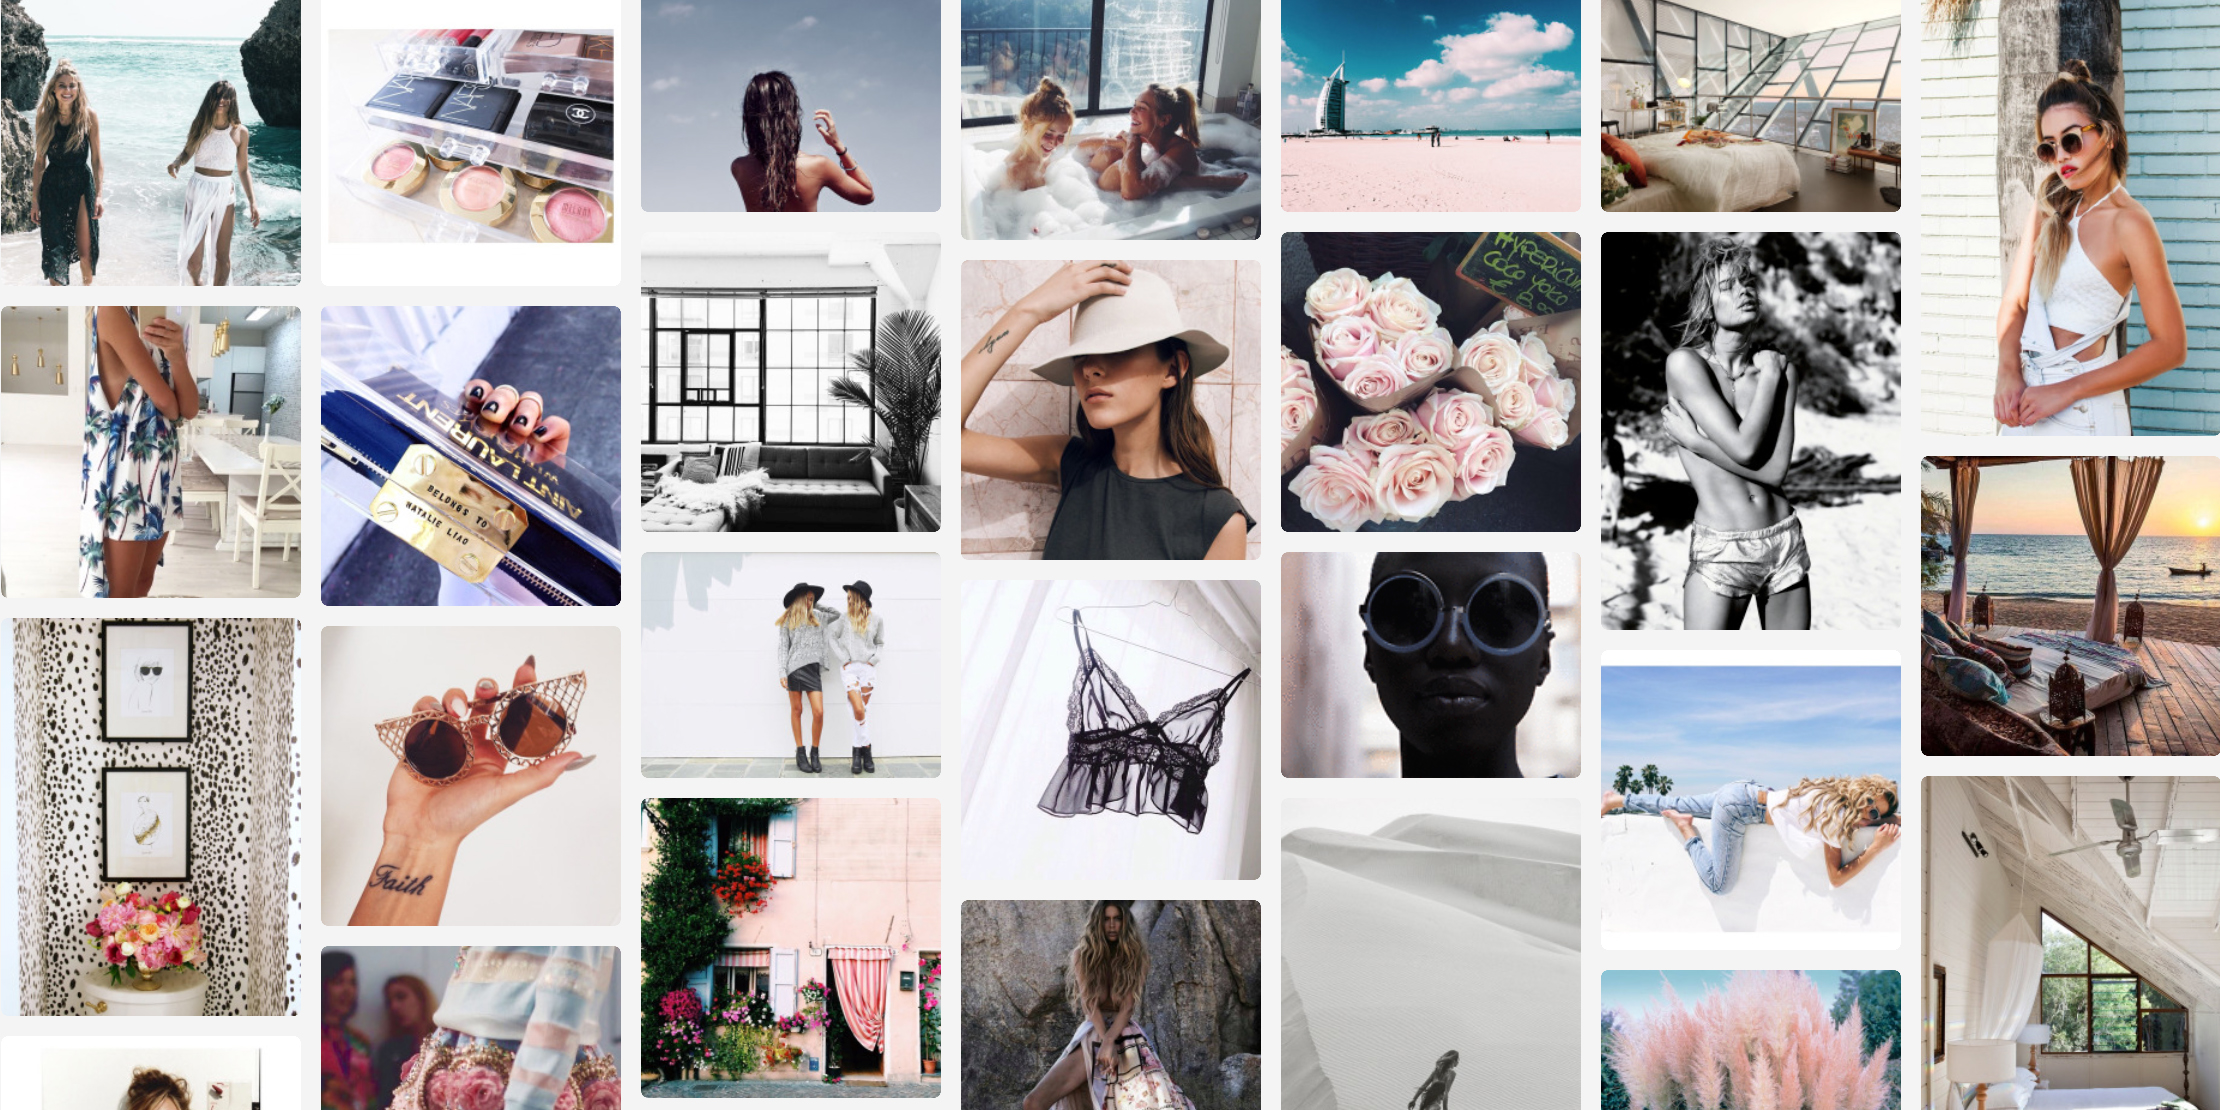 A touch of tumblr - FROM HATS TO HEELSFROM HATS TO HEELS